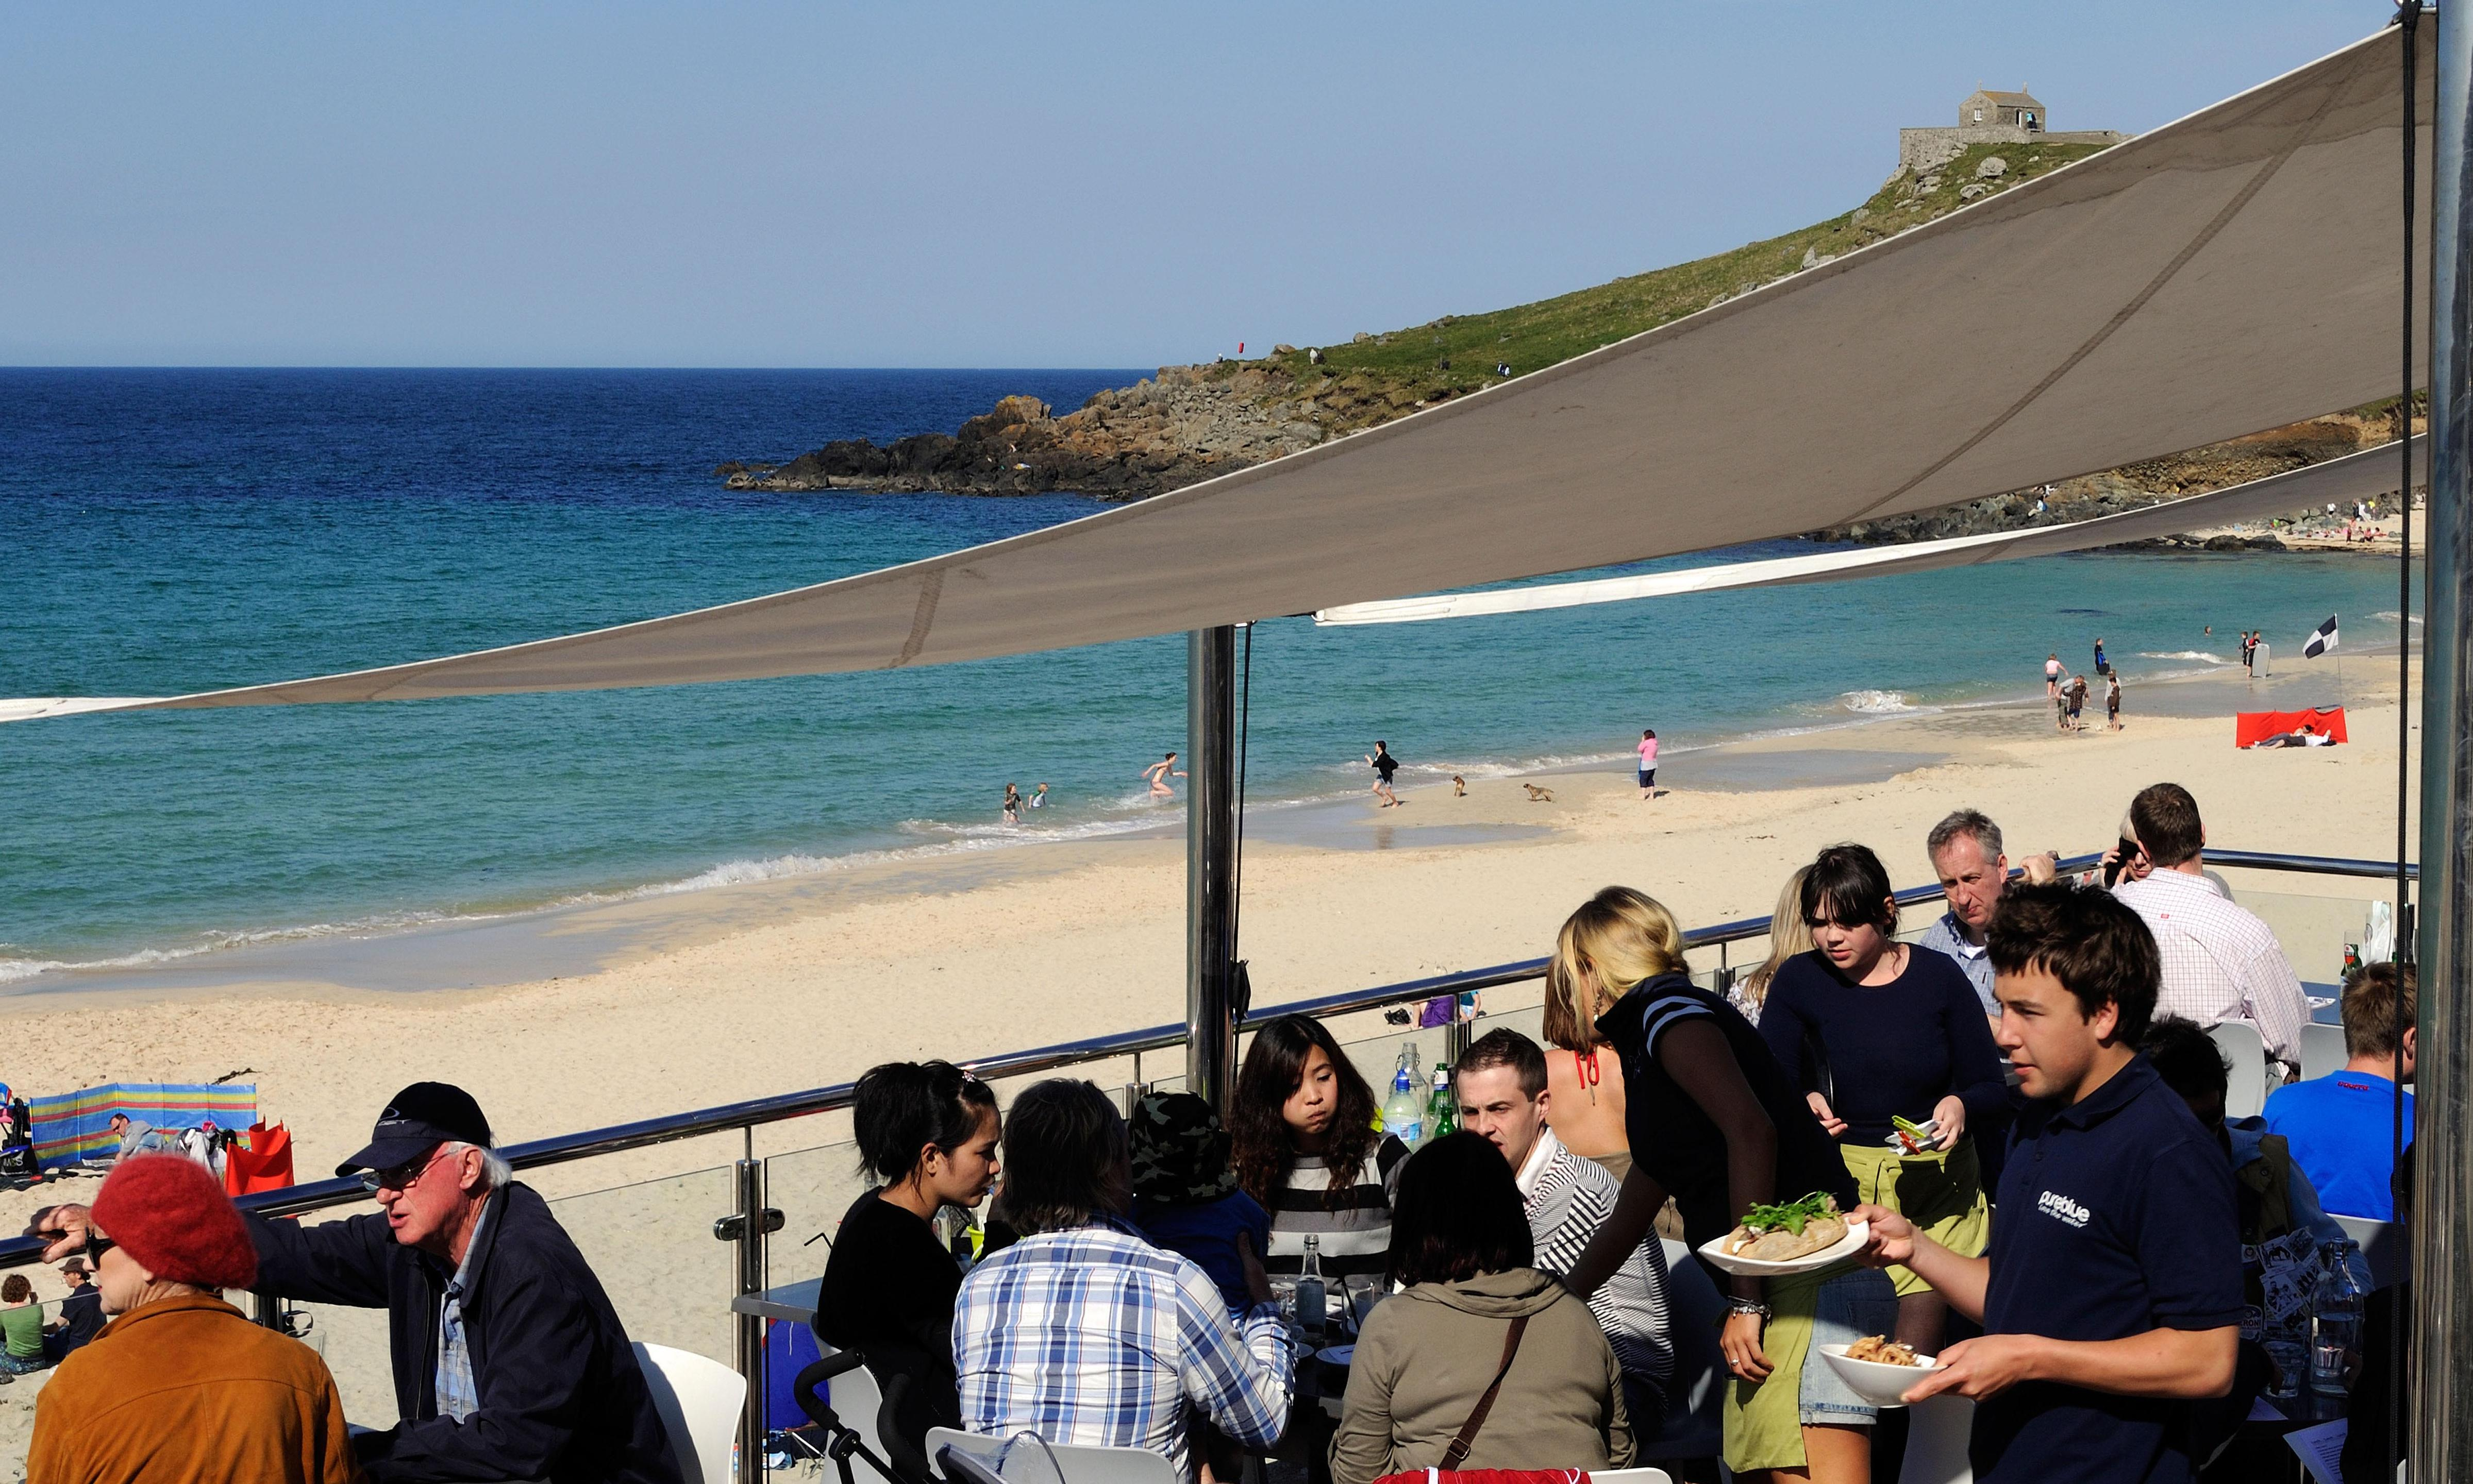 Send us a tip on a great UK seaside cafe or restaurant to win a £200 hotel voucher